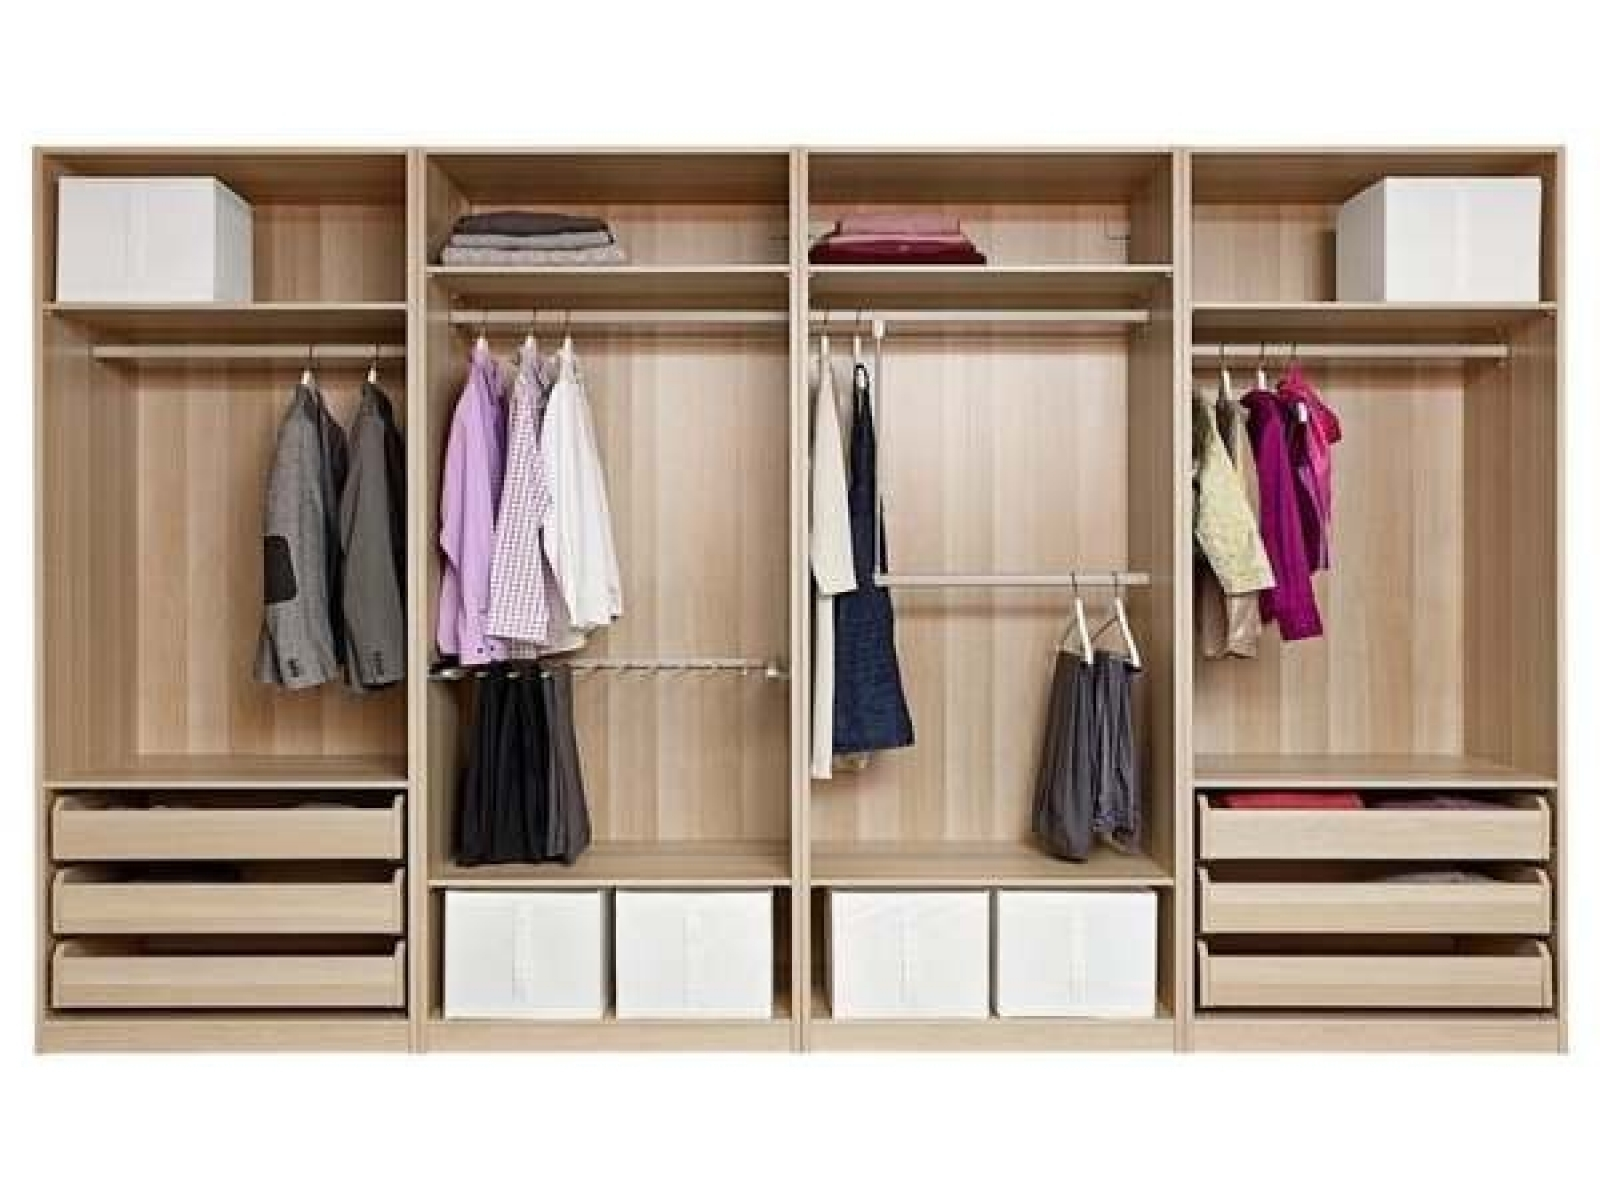 Modest Decoration Wardrobe Shelves And Drawers Mirrored With Inside Most Current Wardrobe With Shelves And Drawers (View 14 of 15)